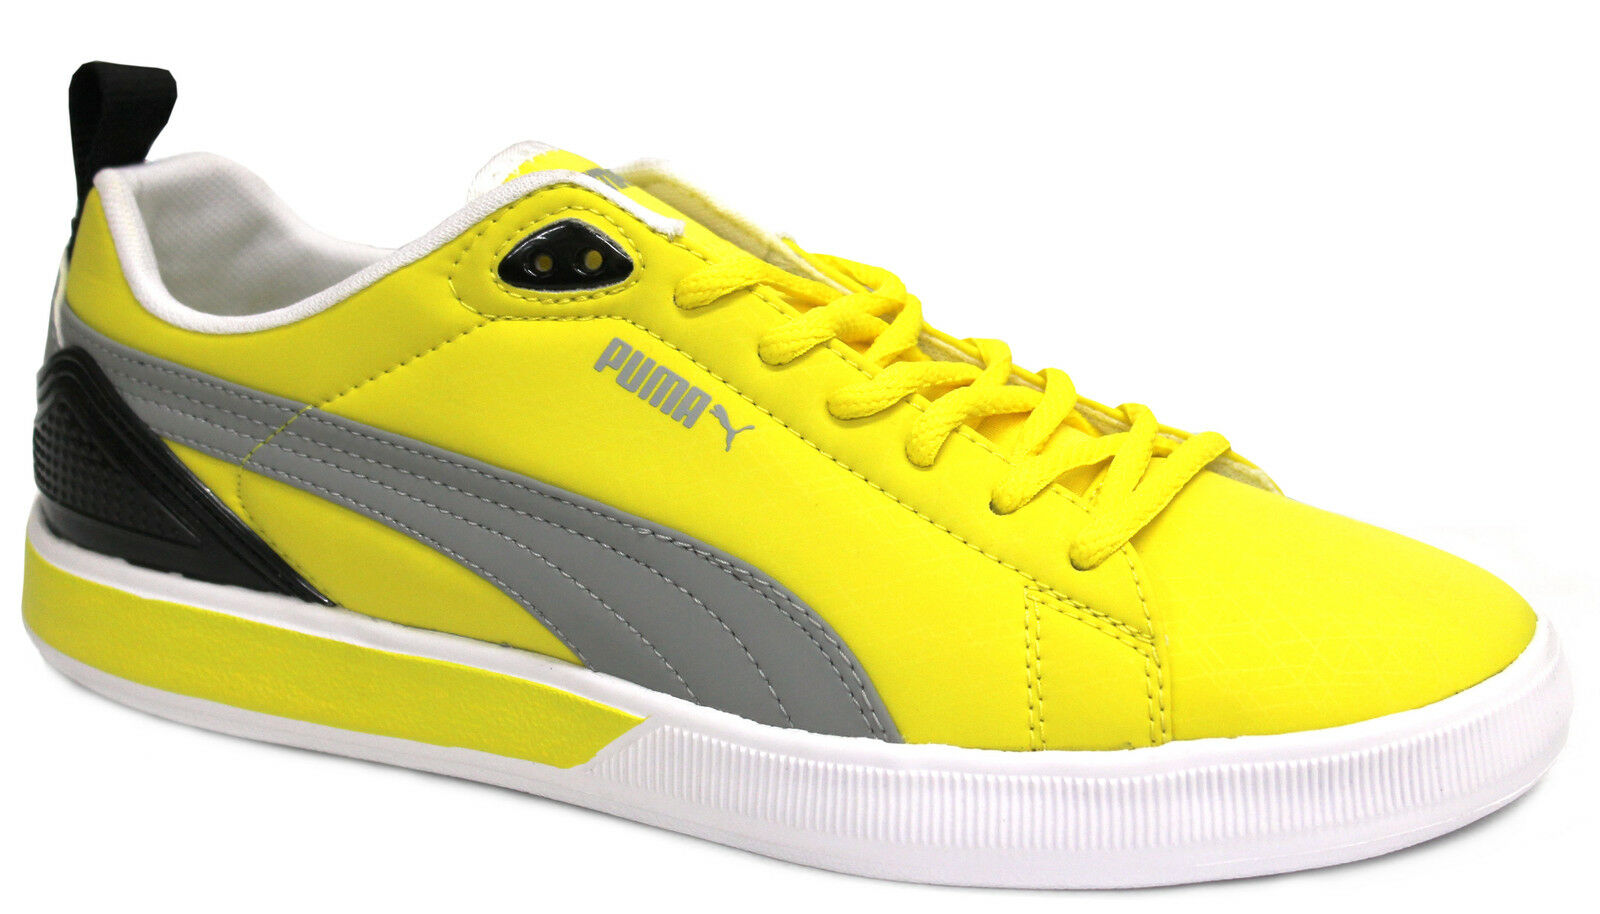 Puma Futuro Lite RT Zapatillas Hombre Amarillo Price reduction Comfortable and good-looking